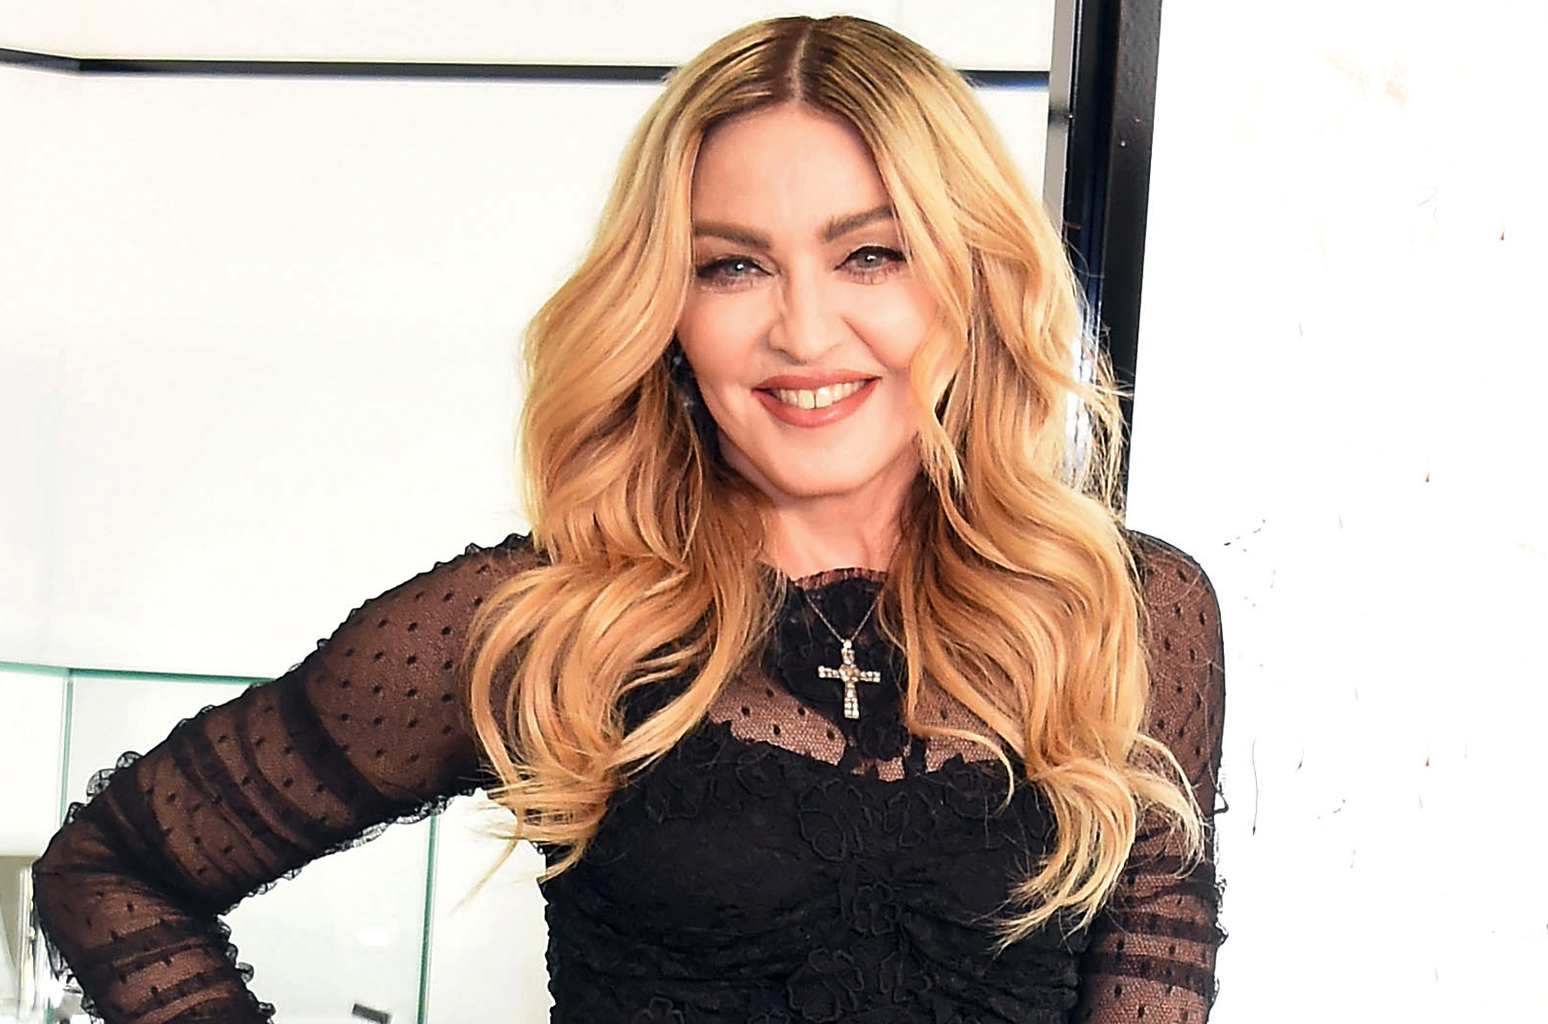 Madonna Wallpapers Music Hq Madonna Pictures 4k Wallpapers 2019